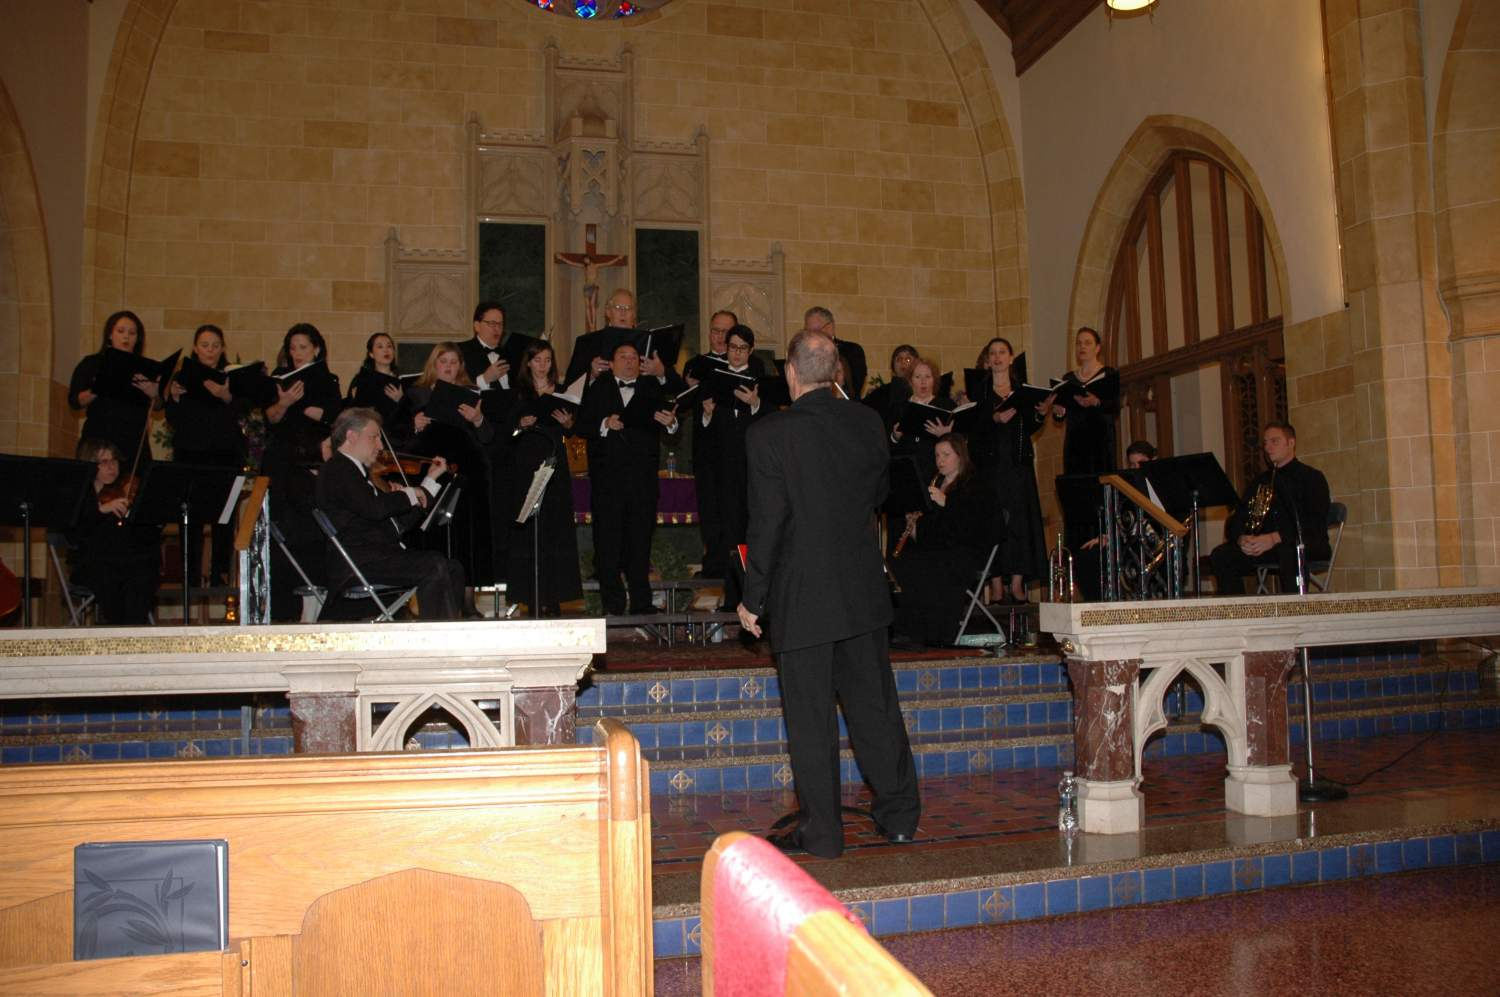 TreasureHouseChoraleChristmasConcert-2013 - 11